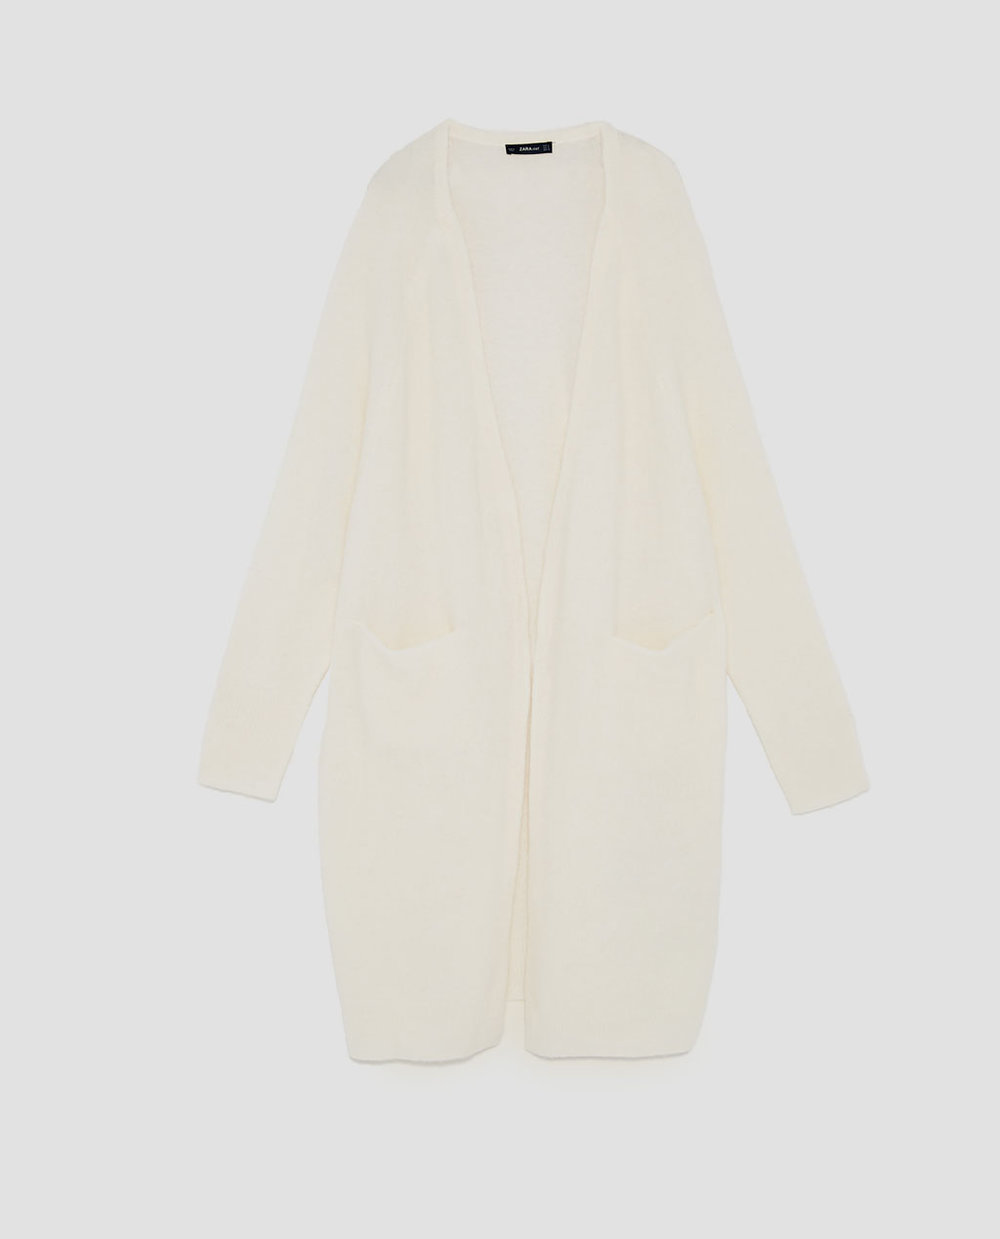 Zara Long Cardigan (click on image for link)